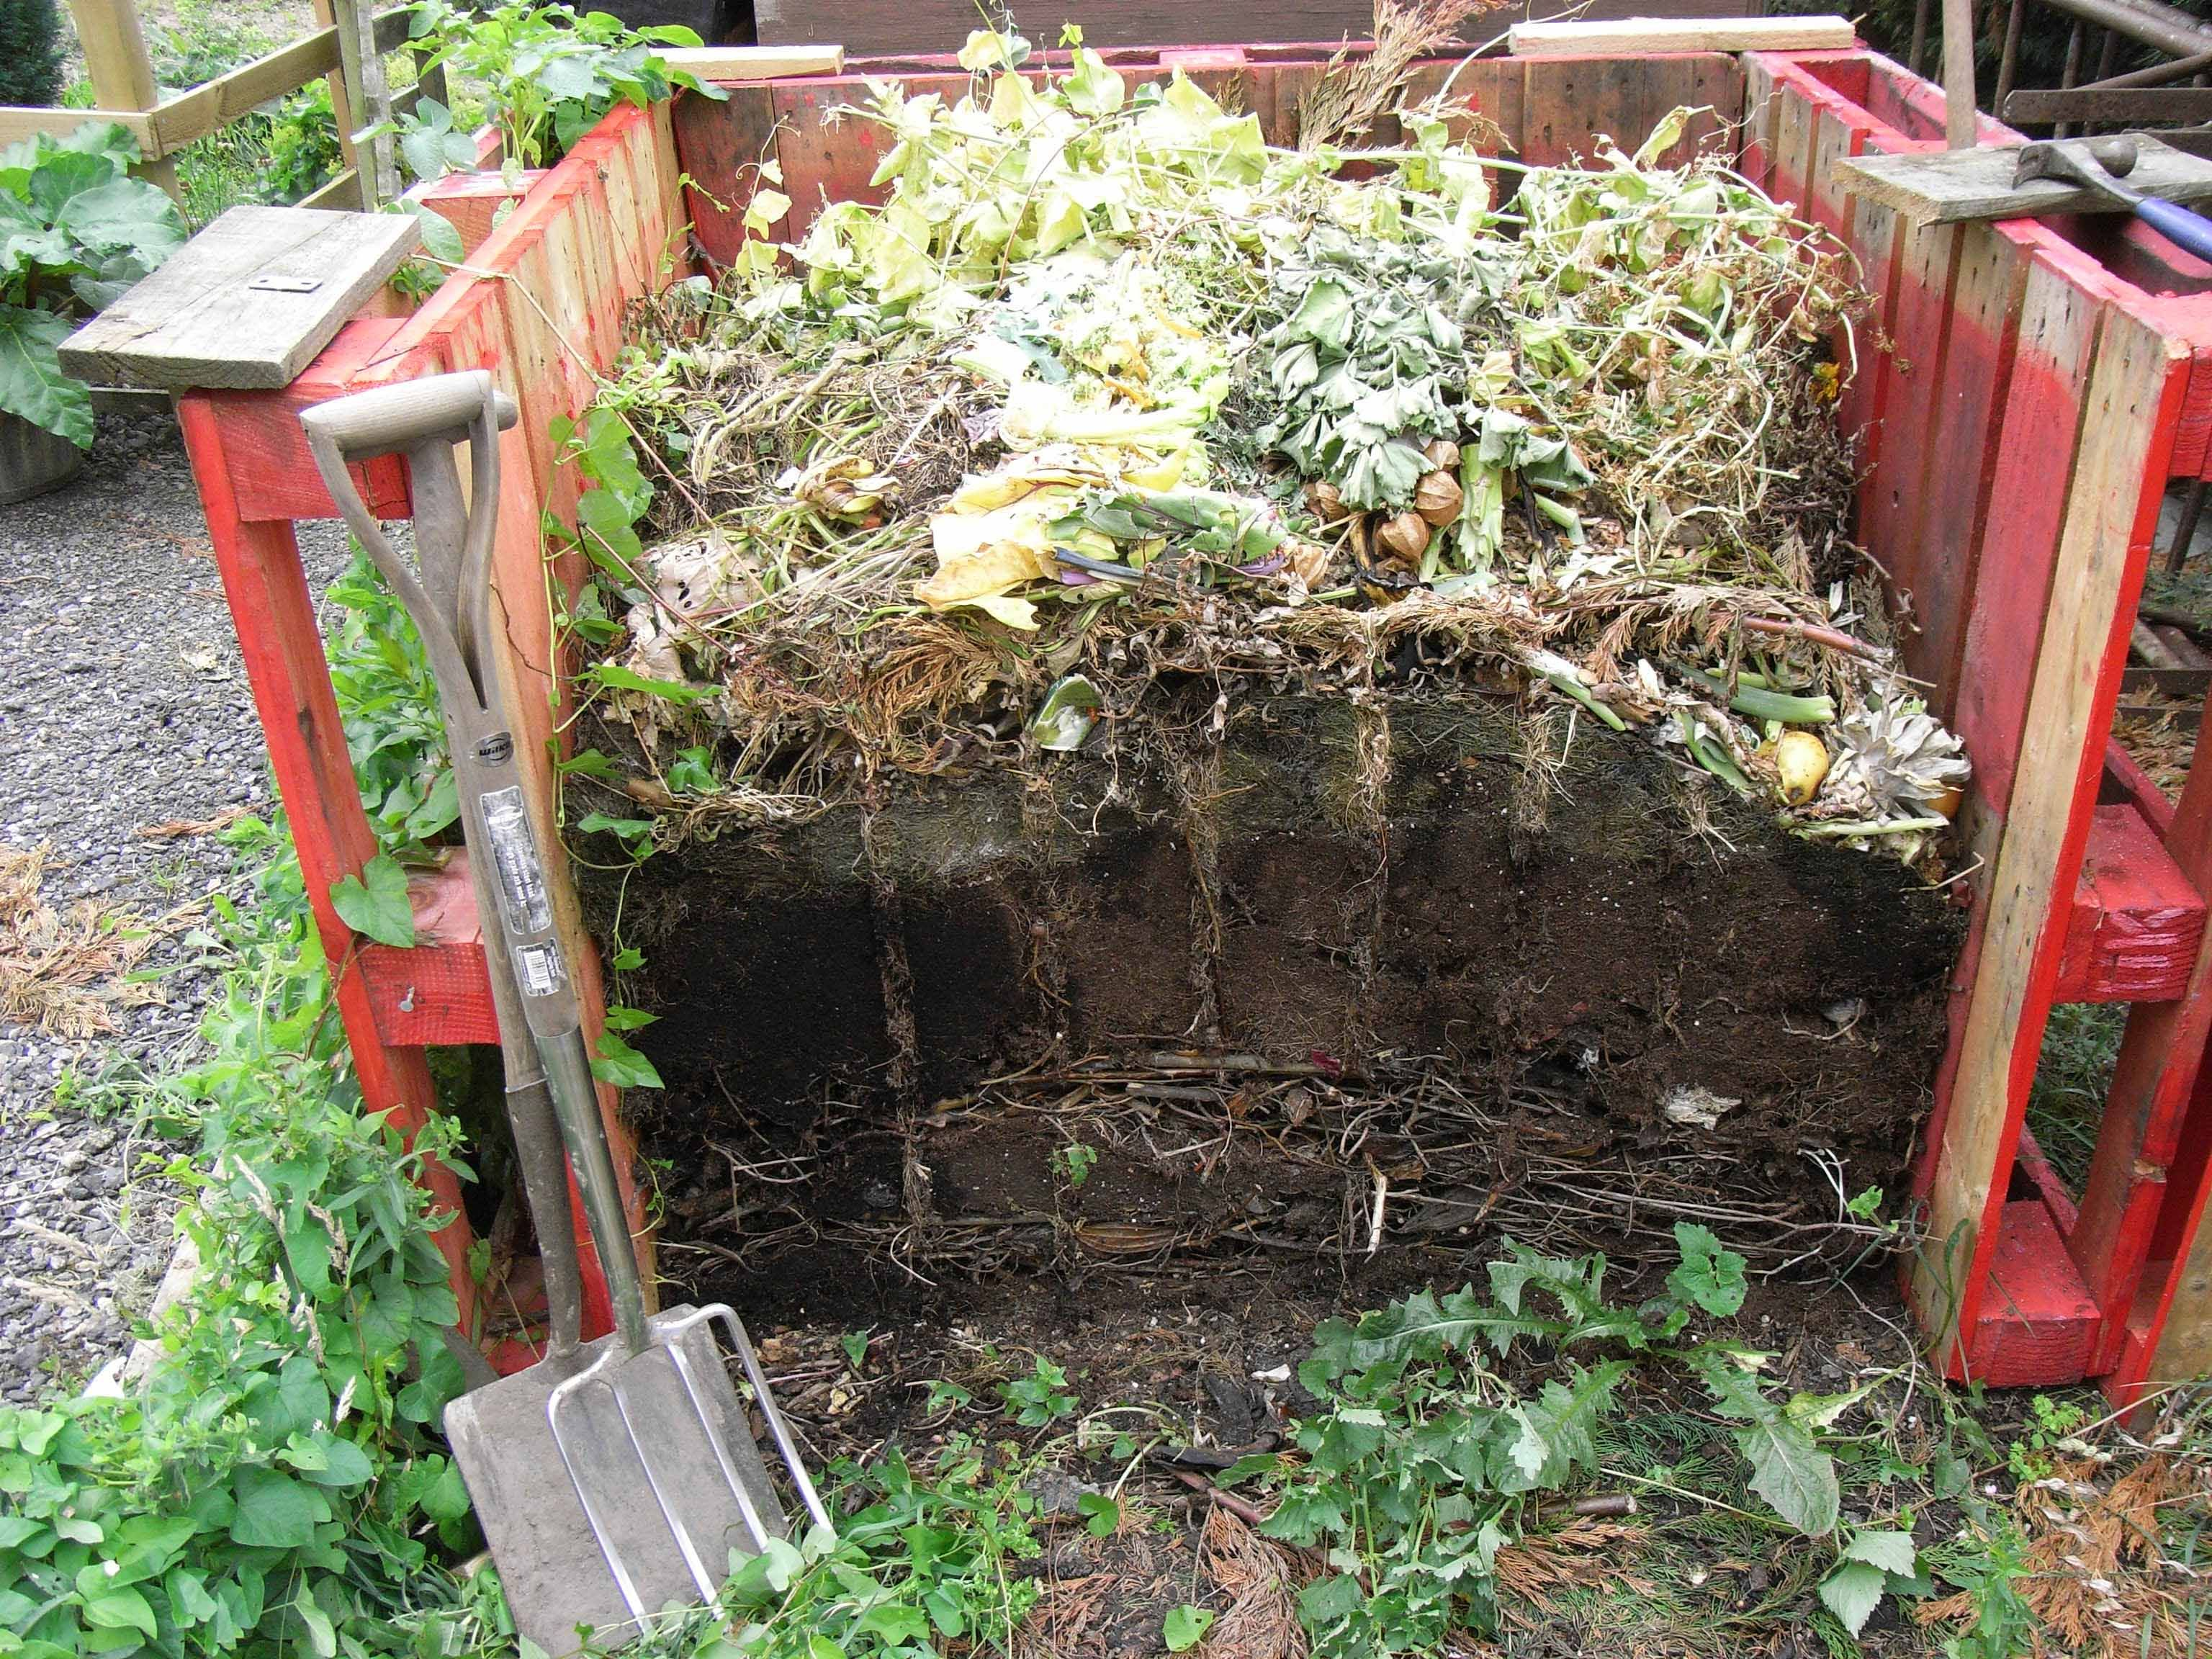 compost pile learning to compost u003e u003e visit us at http